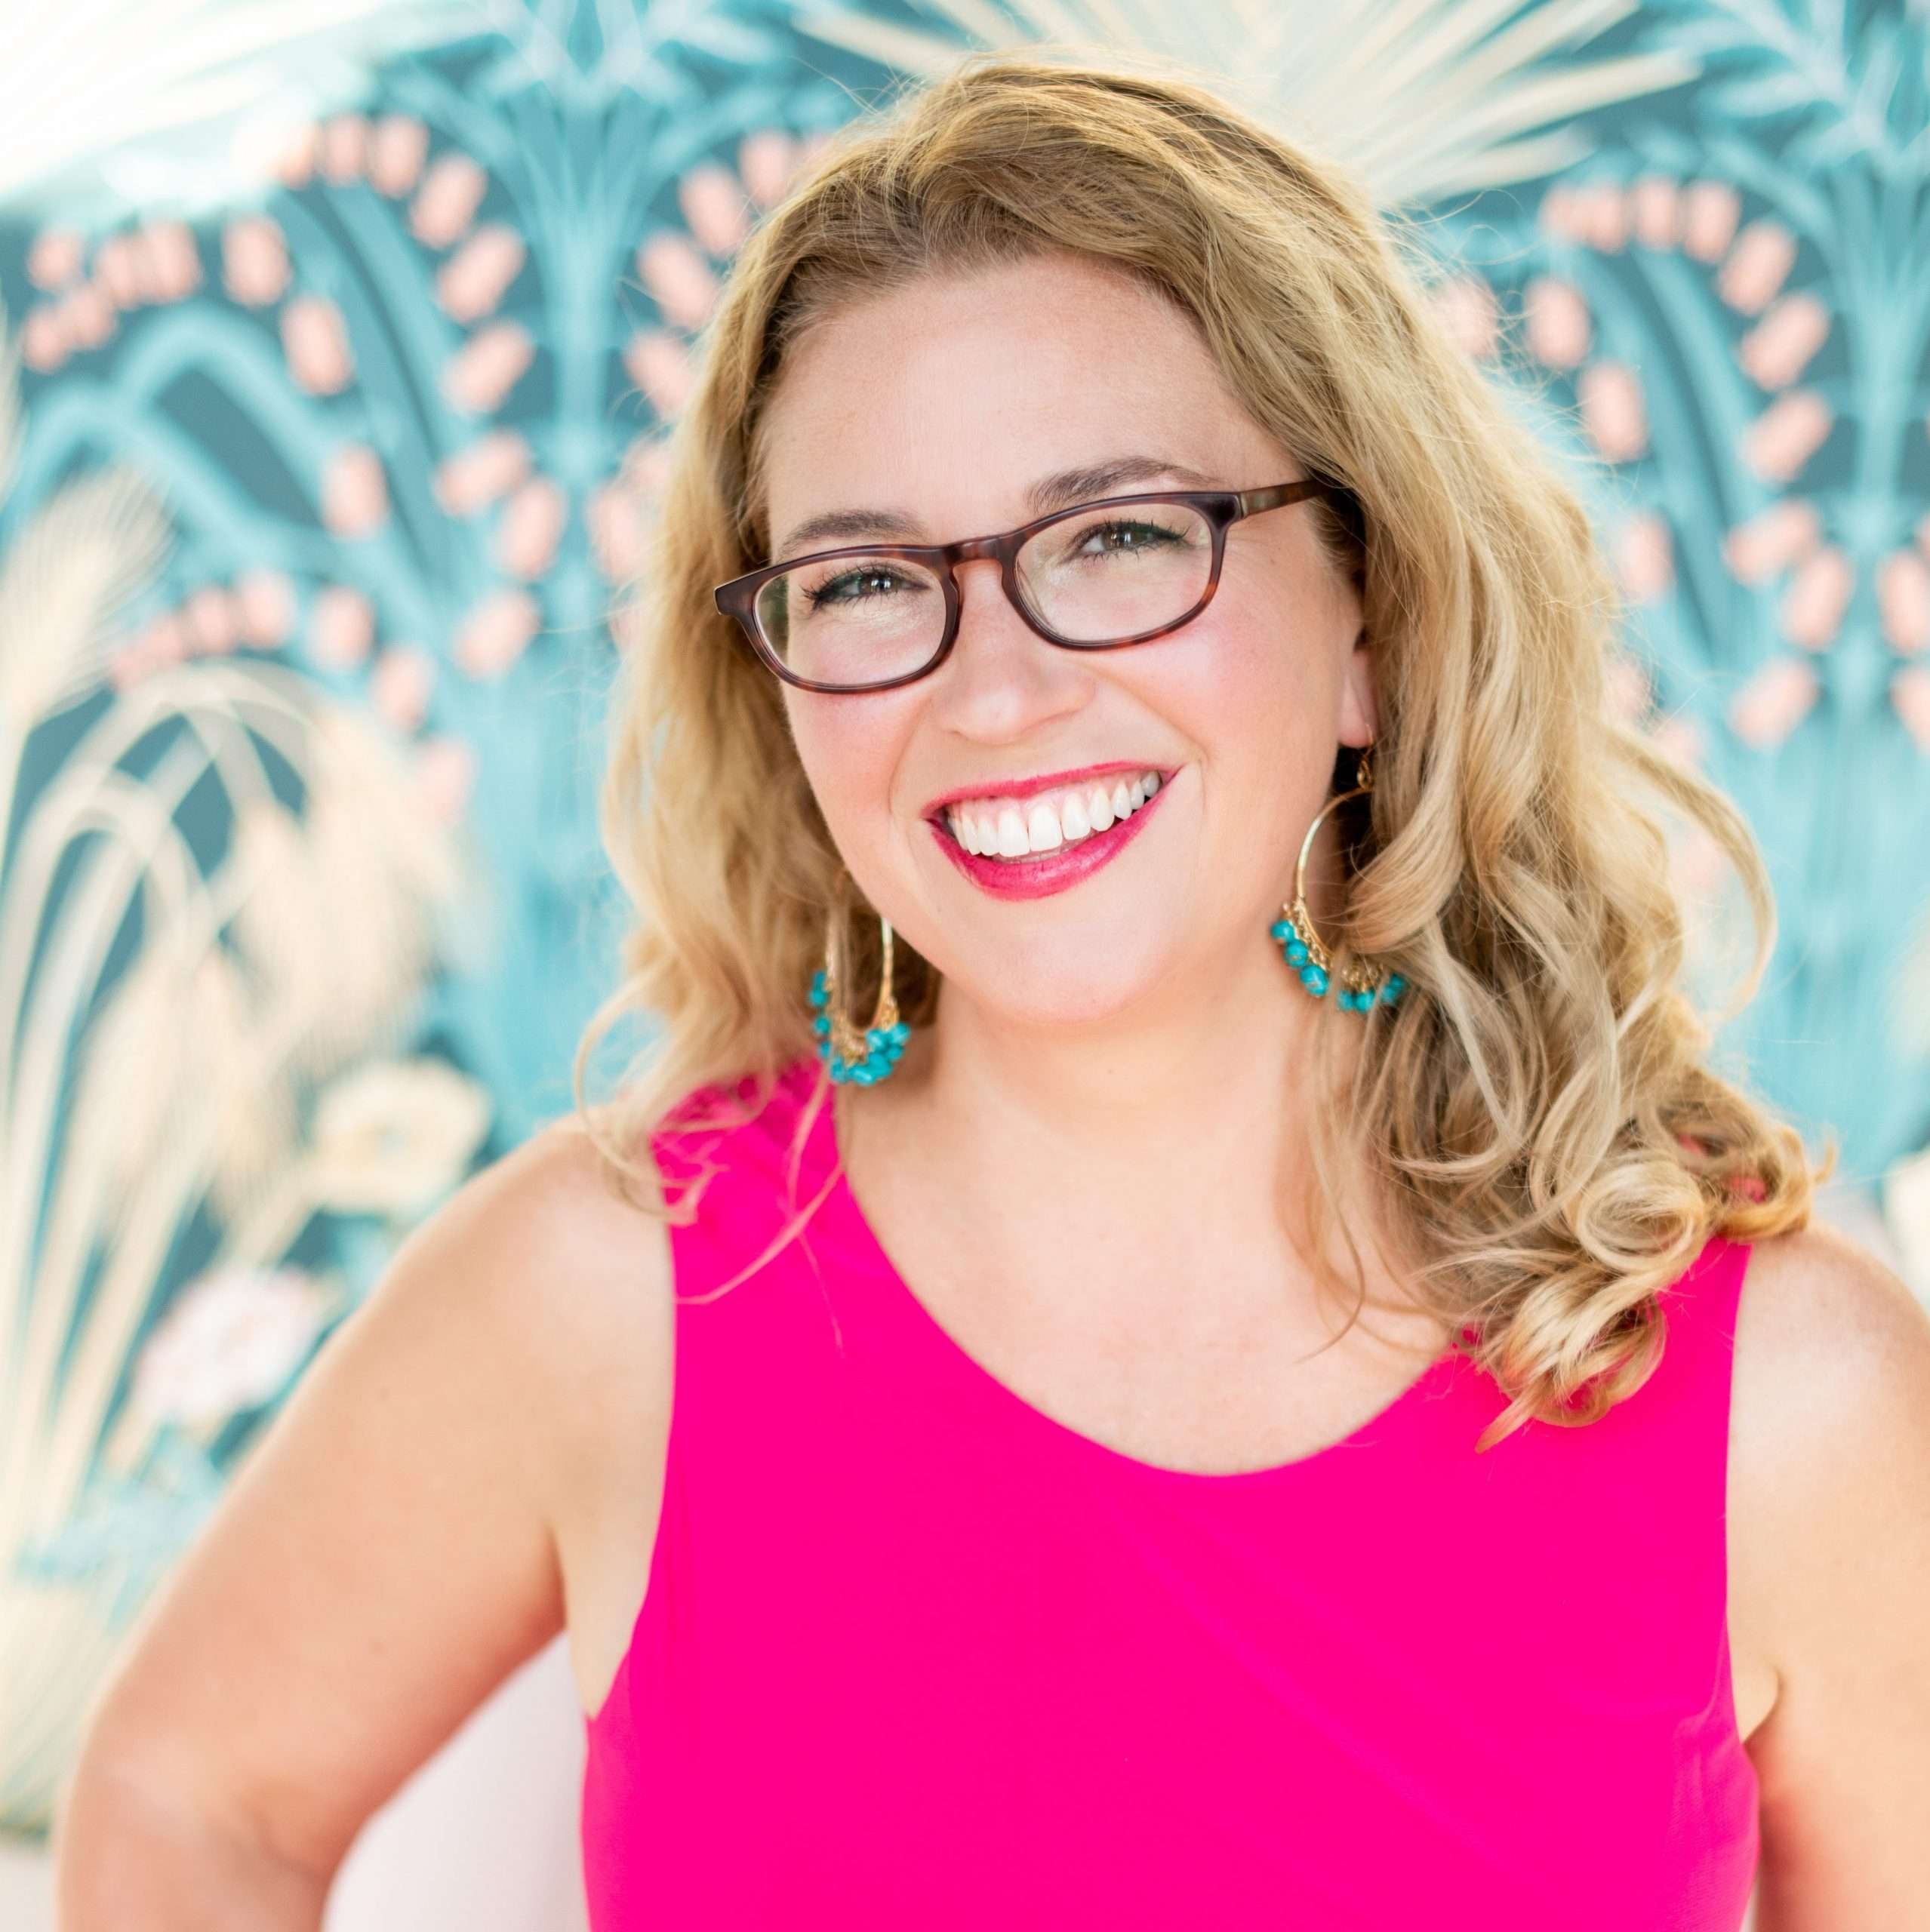 Chicago Based, Heather Vickery, Success and Leadership Coach who hired Molly Hicks, to manage her intentionally brave entrepreneurs program and business